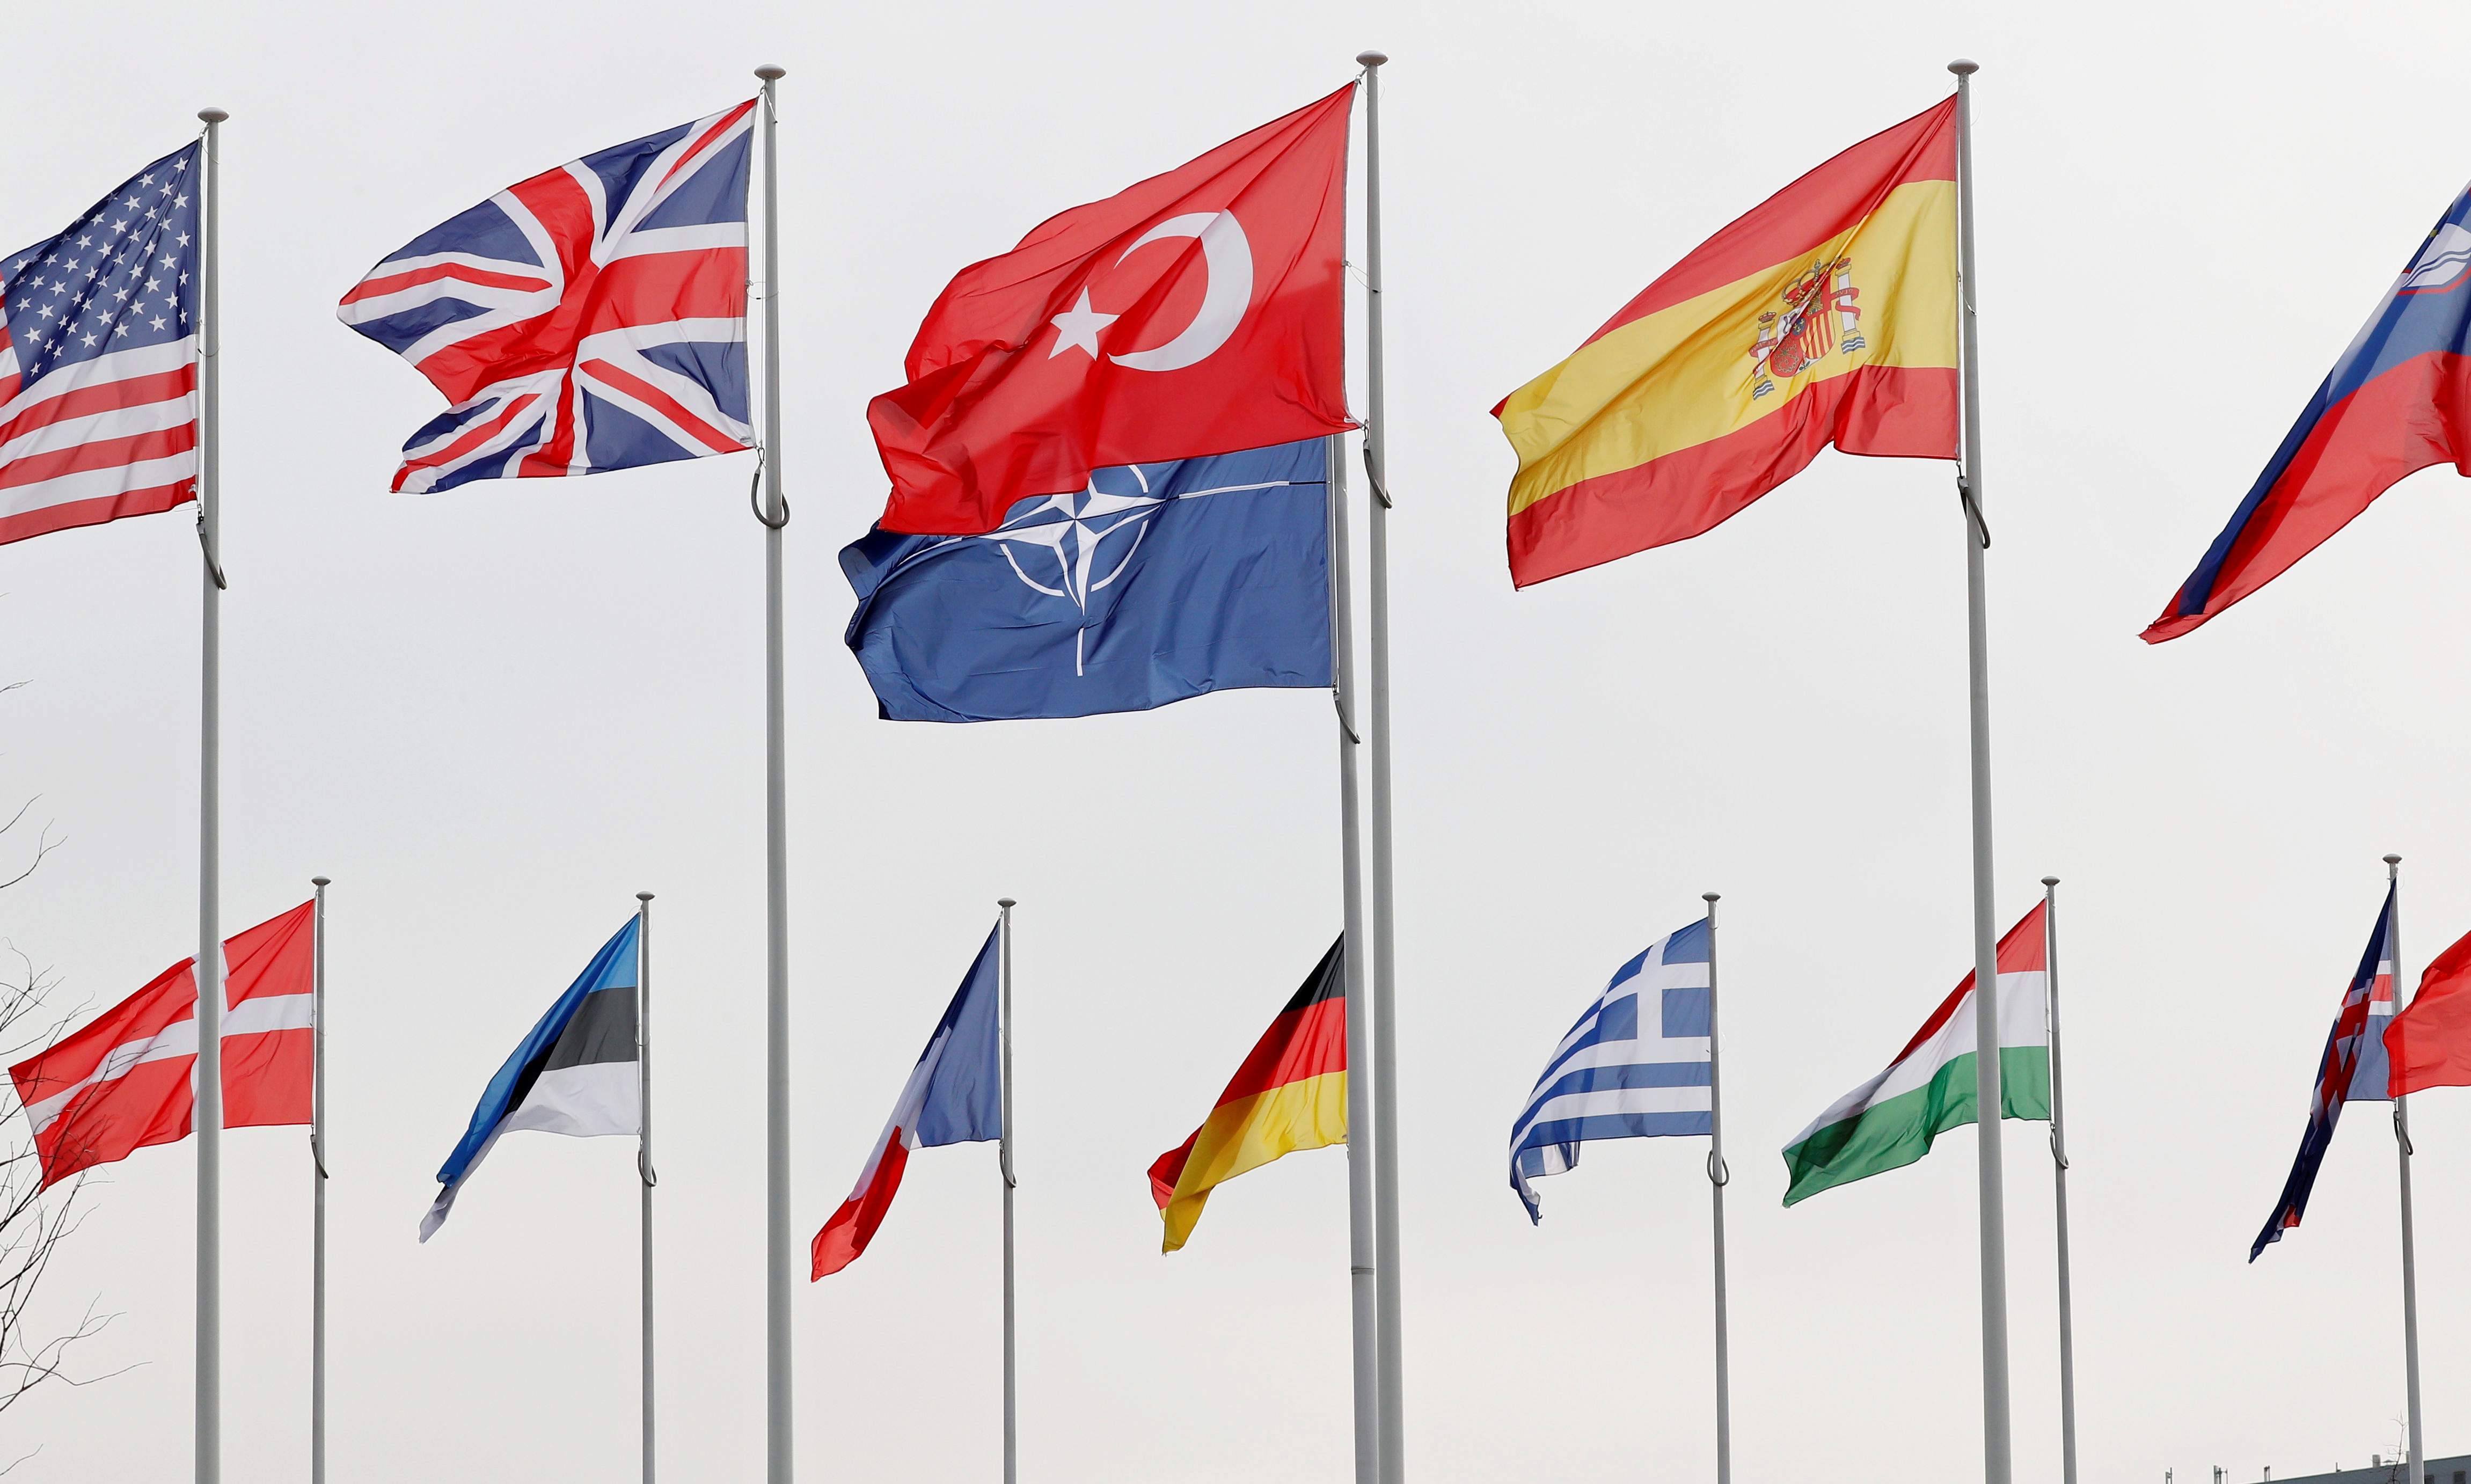 Flags of NATO member countries flutter at the Alliance headquarters in Brussels, Belgium, February 28, 2020.  REUTERS/Francois Lenoir